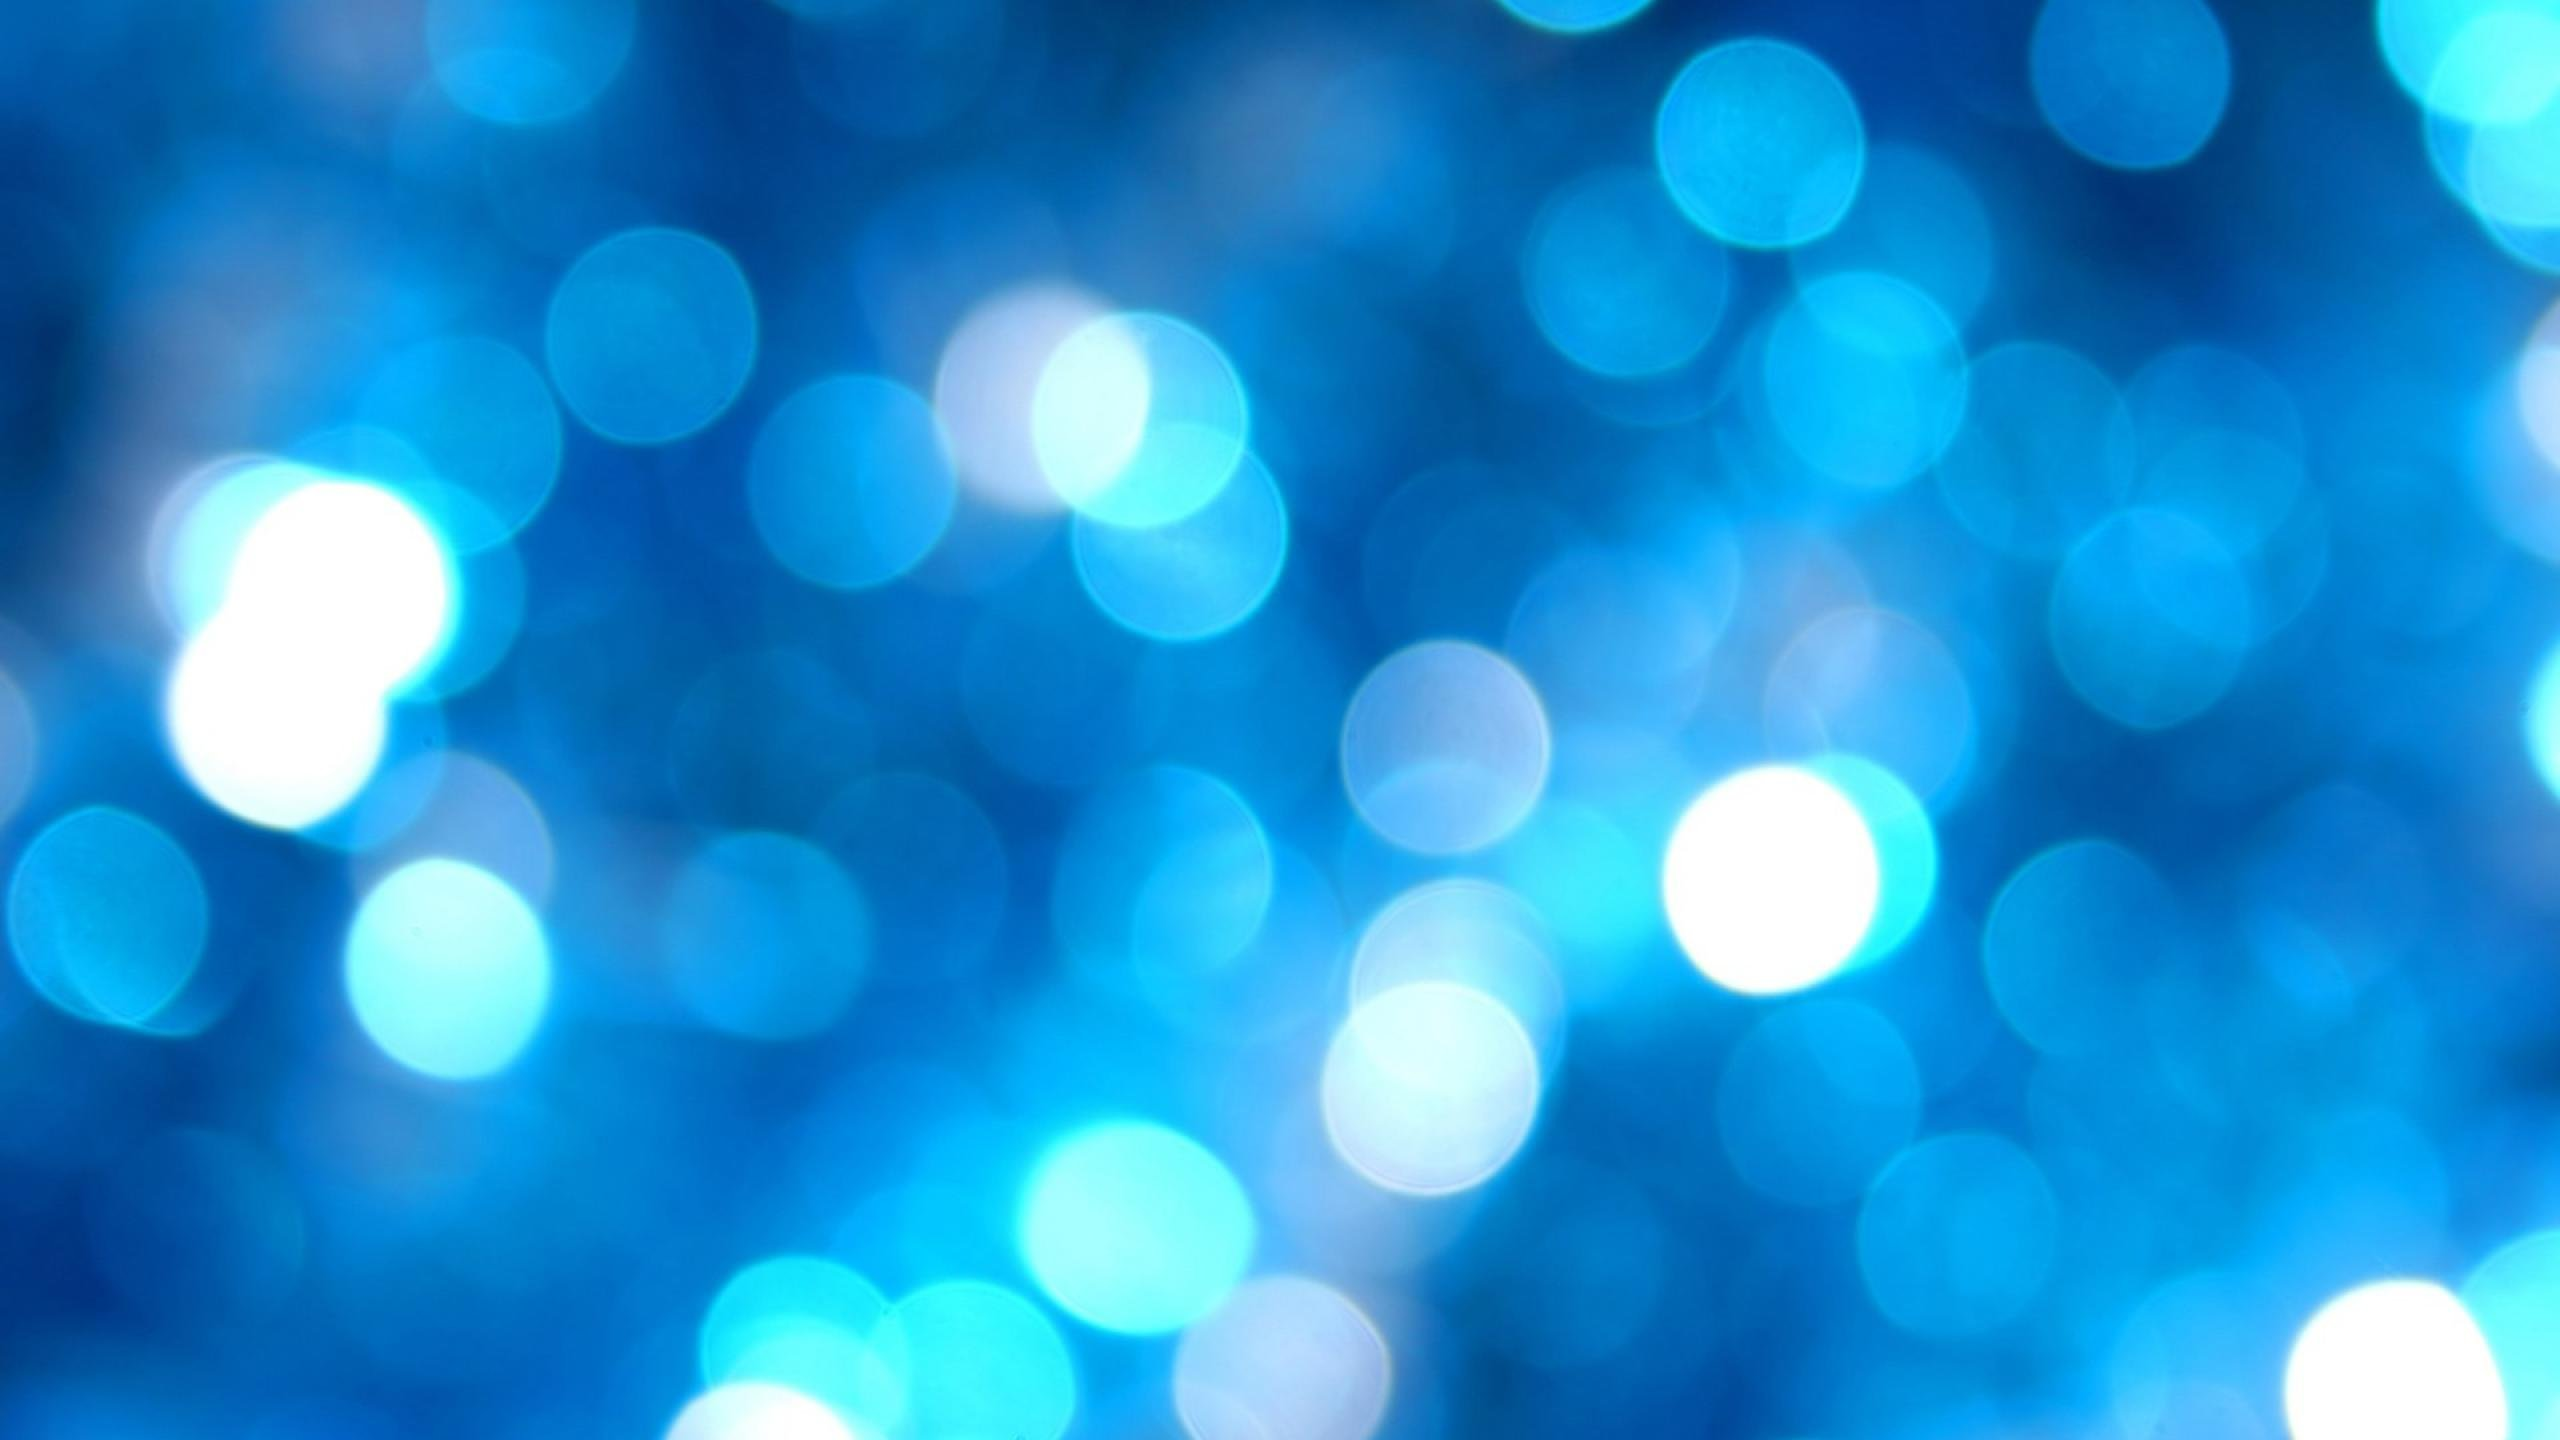 Blue Animated Wallpaper